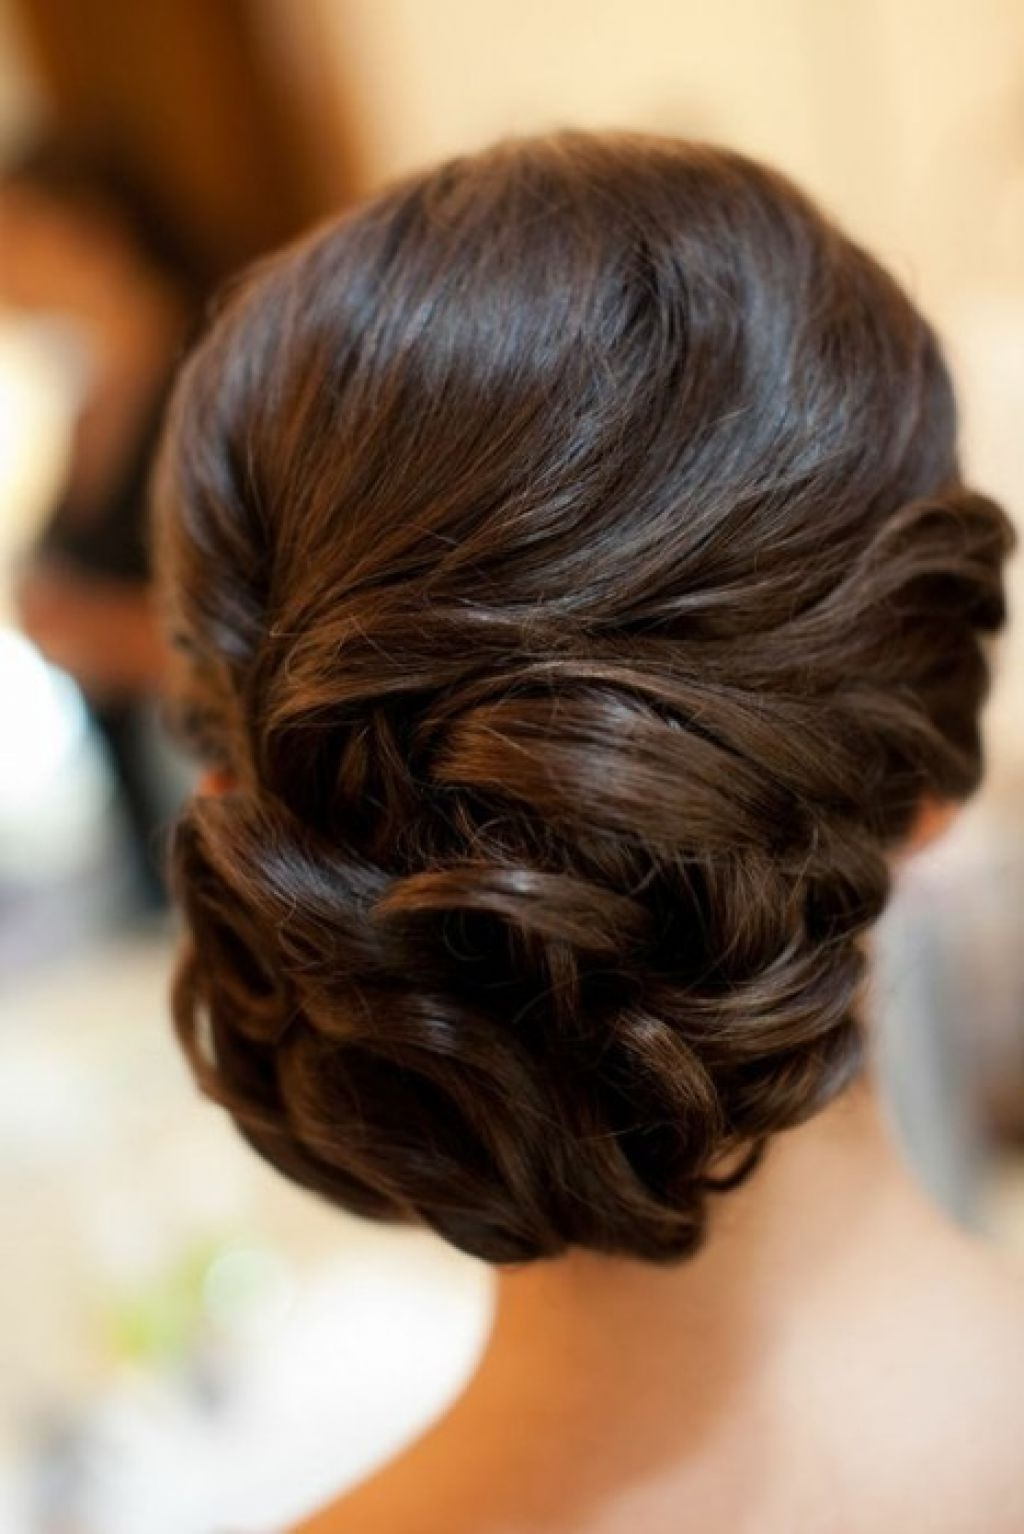 Easy Updo Hairstyles For Medium Hair Hairstyle Fodo Women Impressive Within Wedding Updo Hairstyles For Shoulder Length Hair (View 13 of 15)